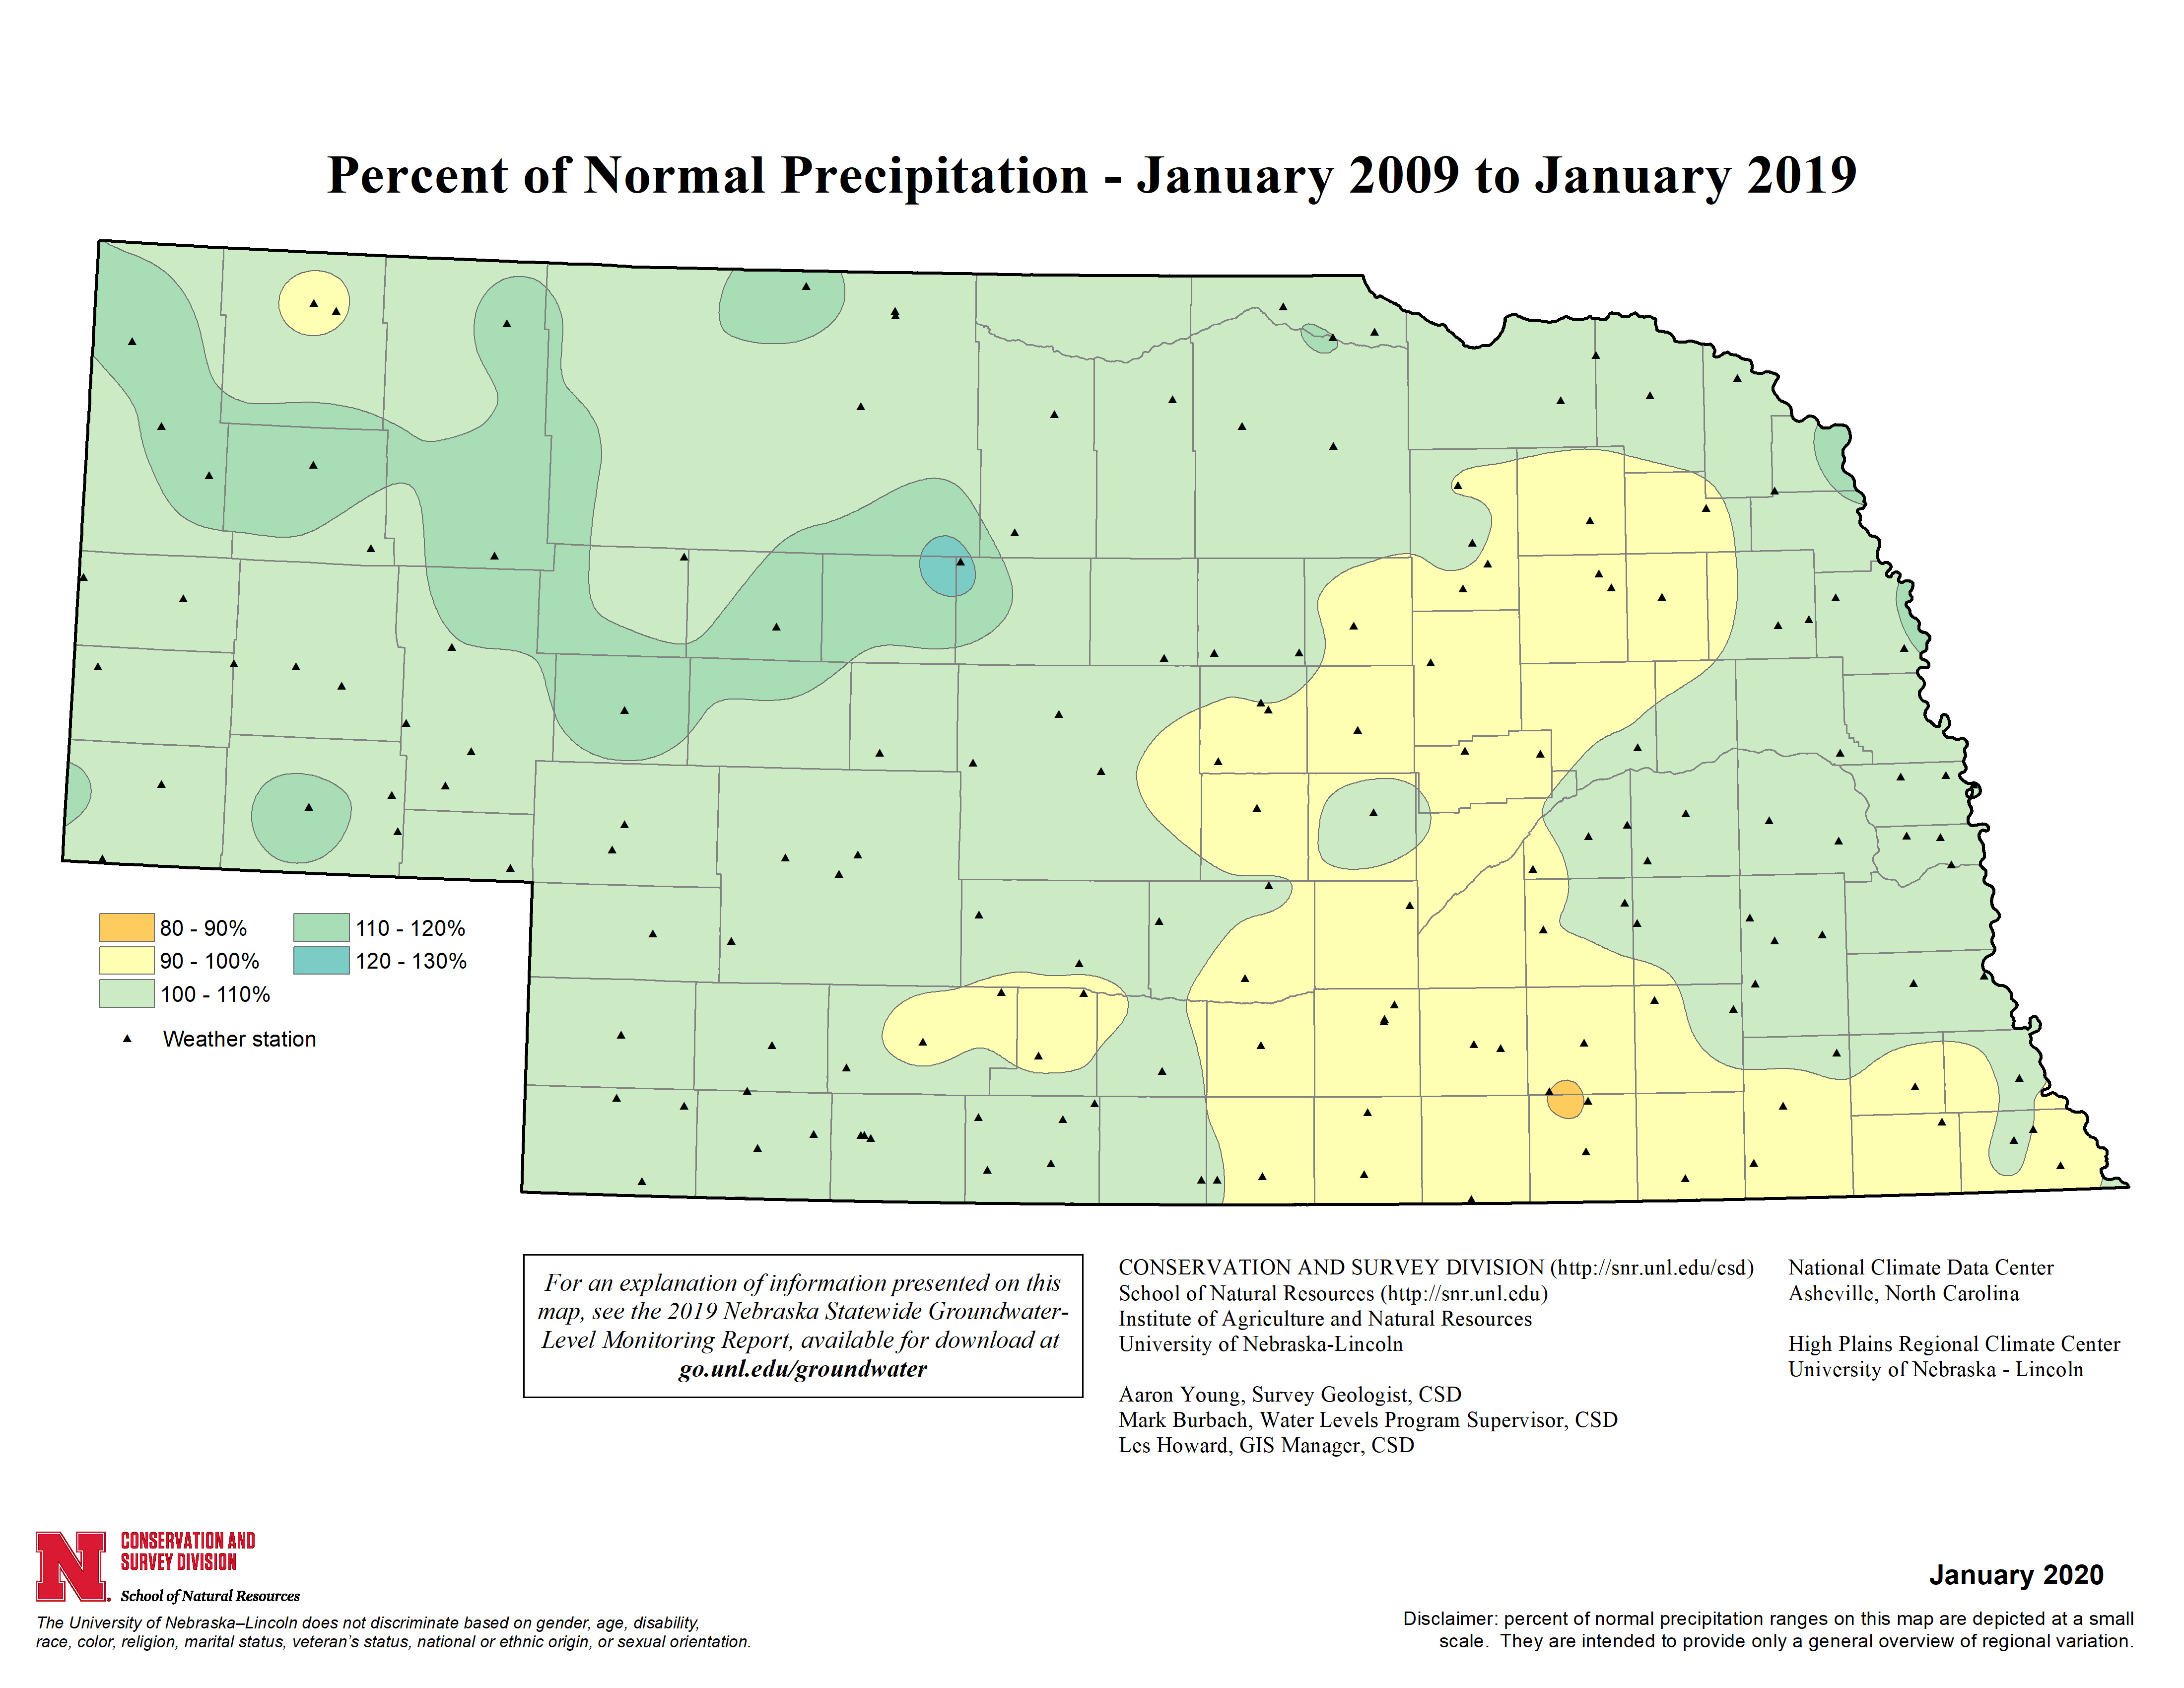 Percent of Normal Precipitation, January 2009 - January 2019